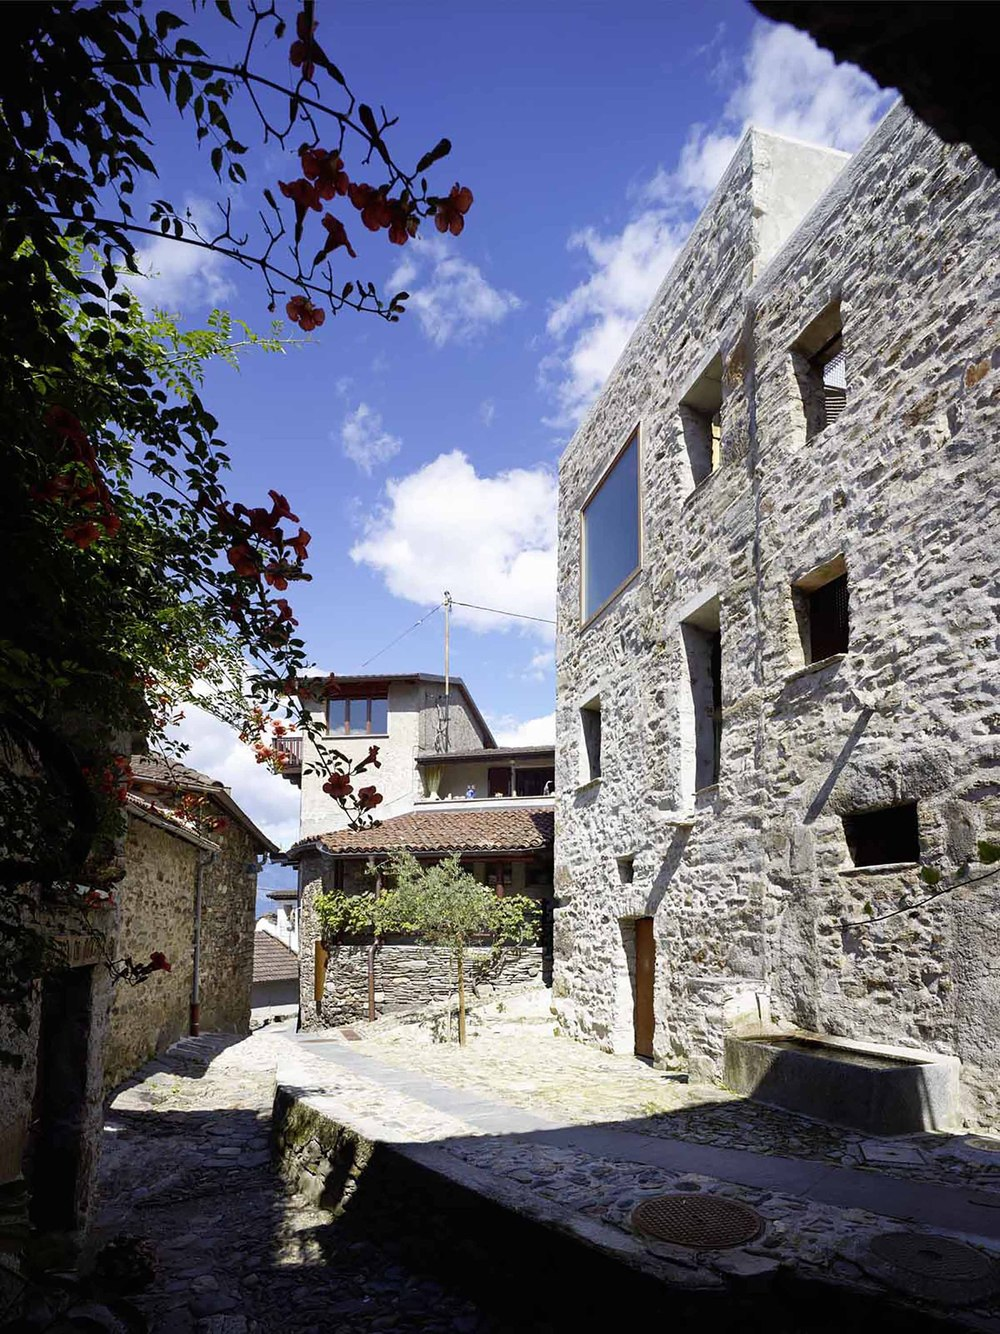 543dd5cac07a80762d00024d_stone-house-transformation-in-scaiano-wespi-de-meuron-romeo-architects_1430_cf030264_r.jpg